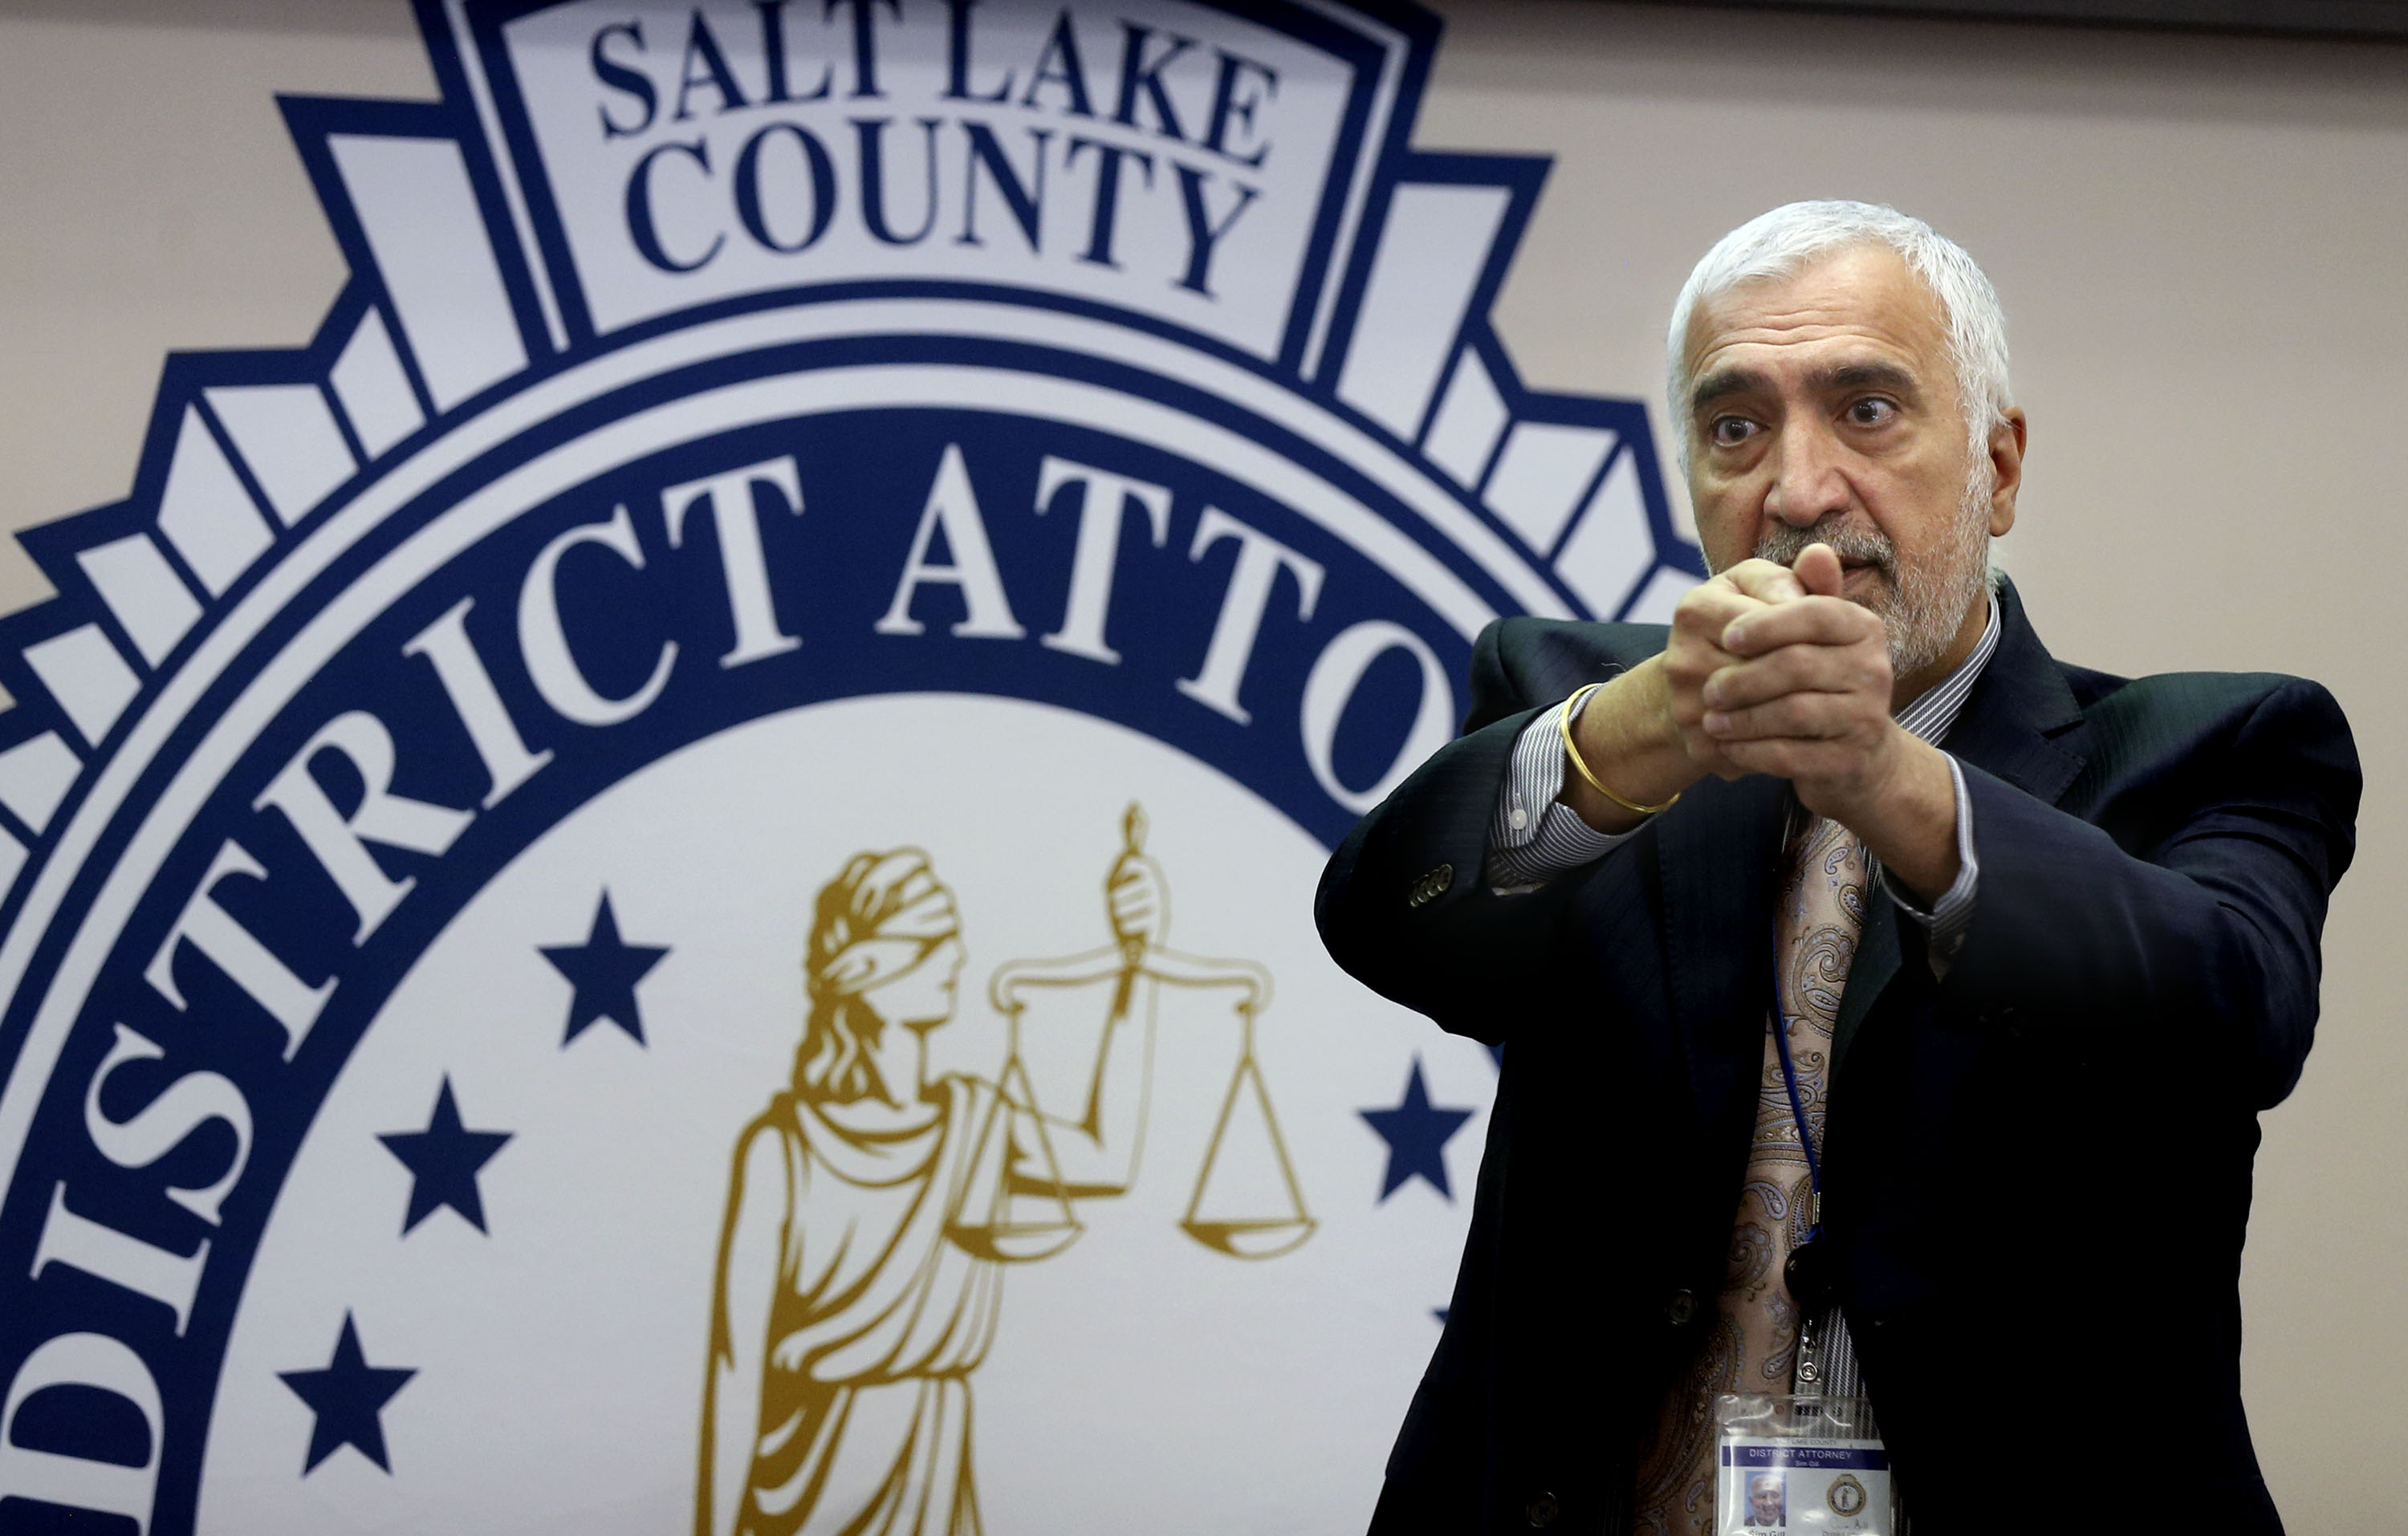 Salt Lake County District Attorney Sim Gill holds his hands up as if firing a gun during a press conference at the District Attorney's Office in Salt Lake City on Friday, April 9, 2021. During the press conference, Gill announced three police officers who shot and killed Matthew C. Knowlden, 22, after he pointed a gun at them on Sept. 18, 2020, were legally justified in doing so, even though the man never fired a shot.